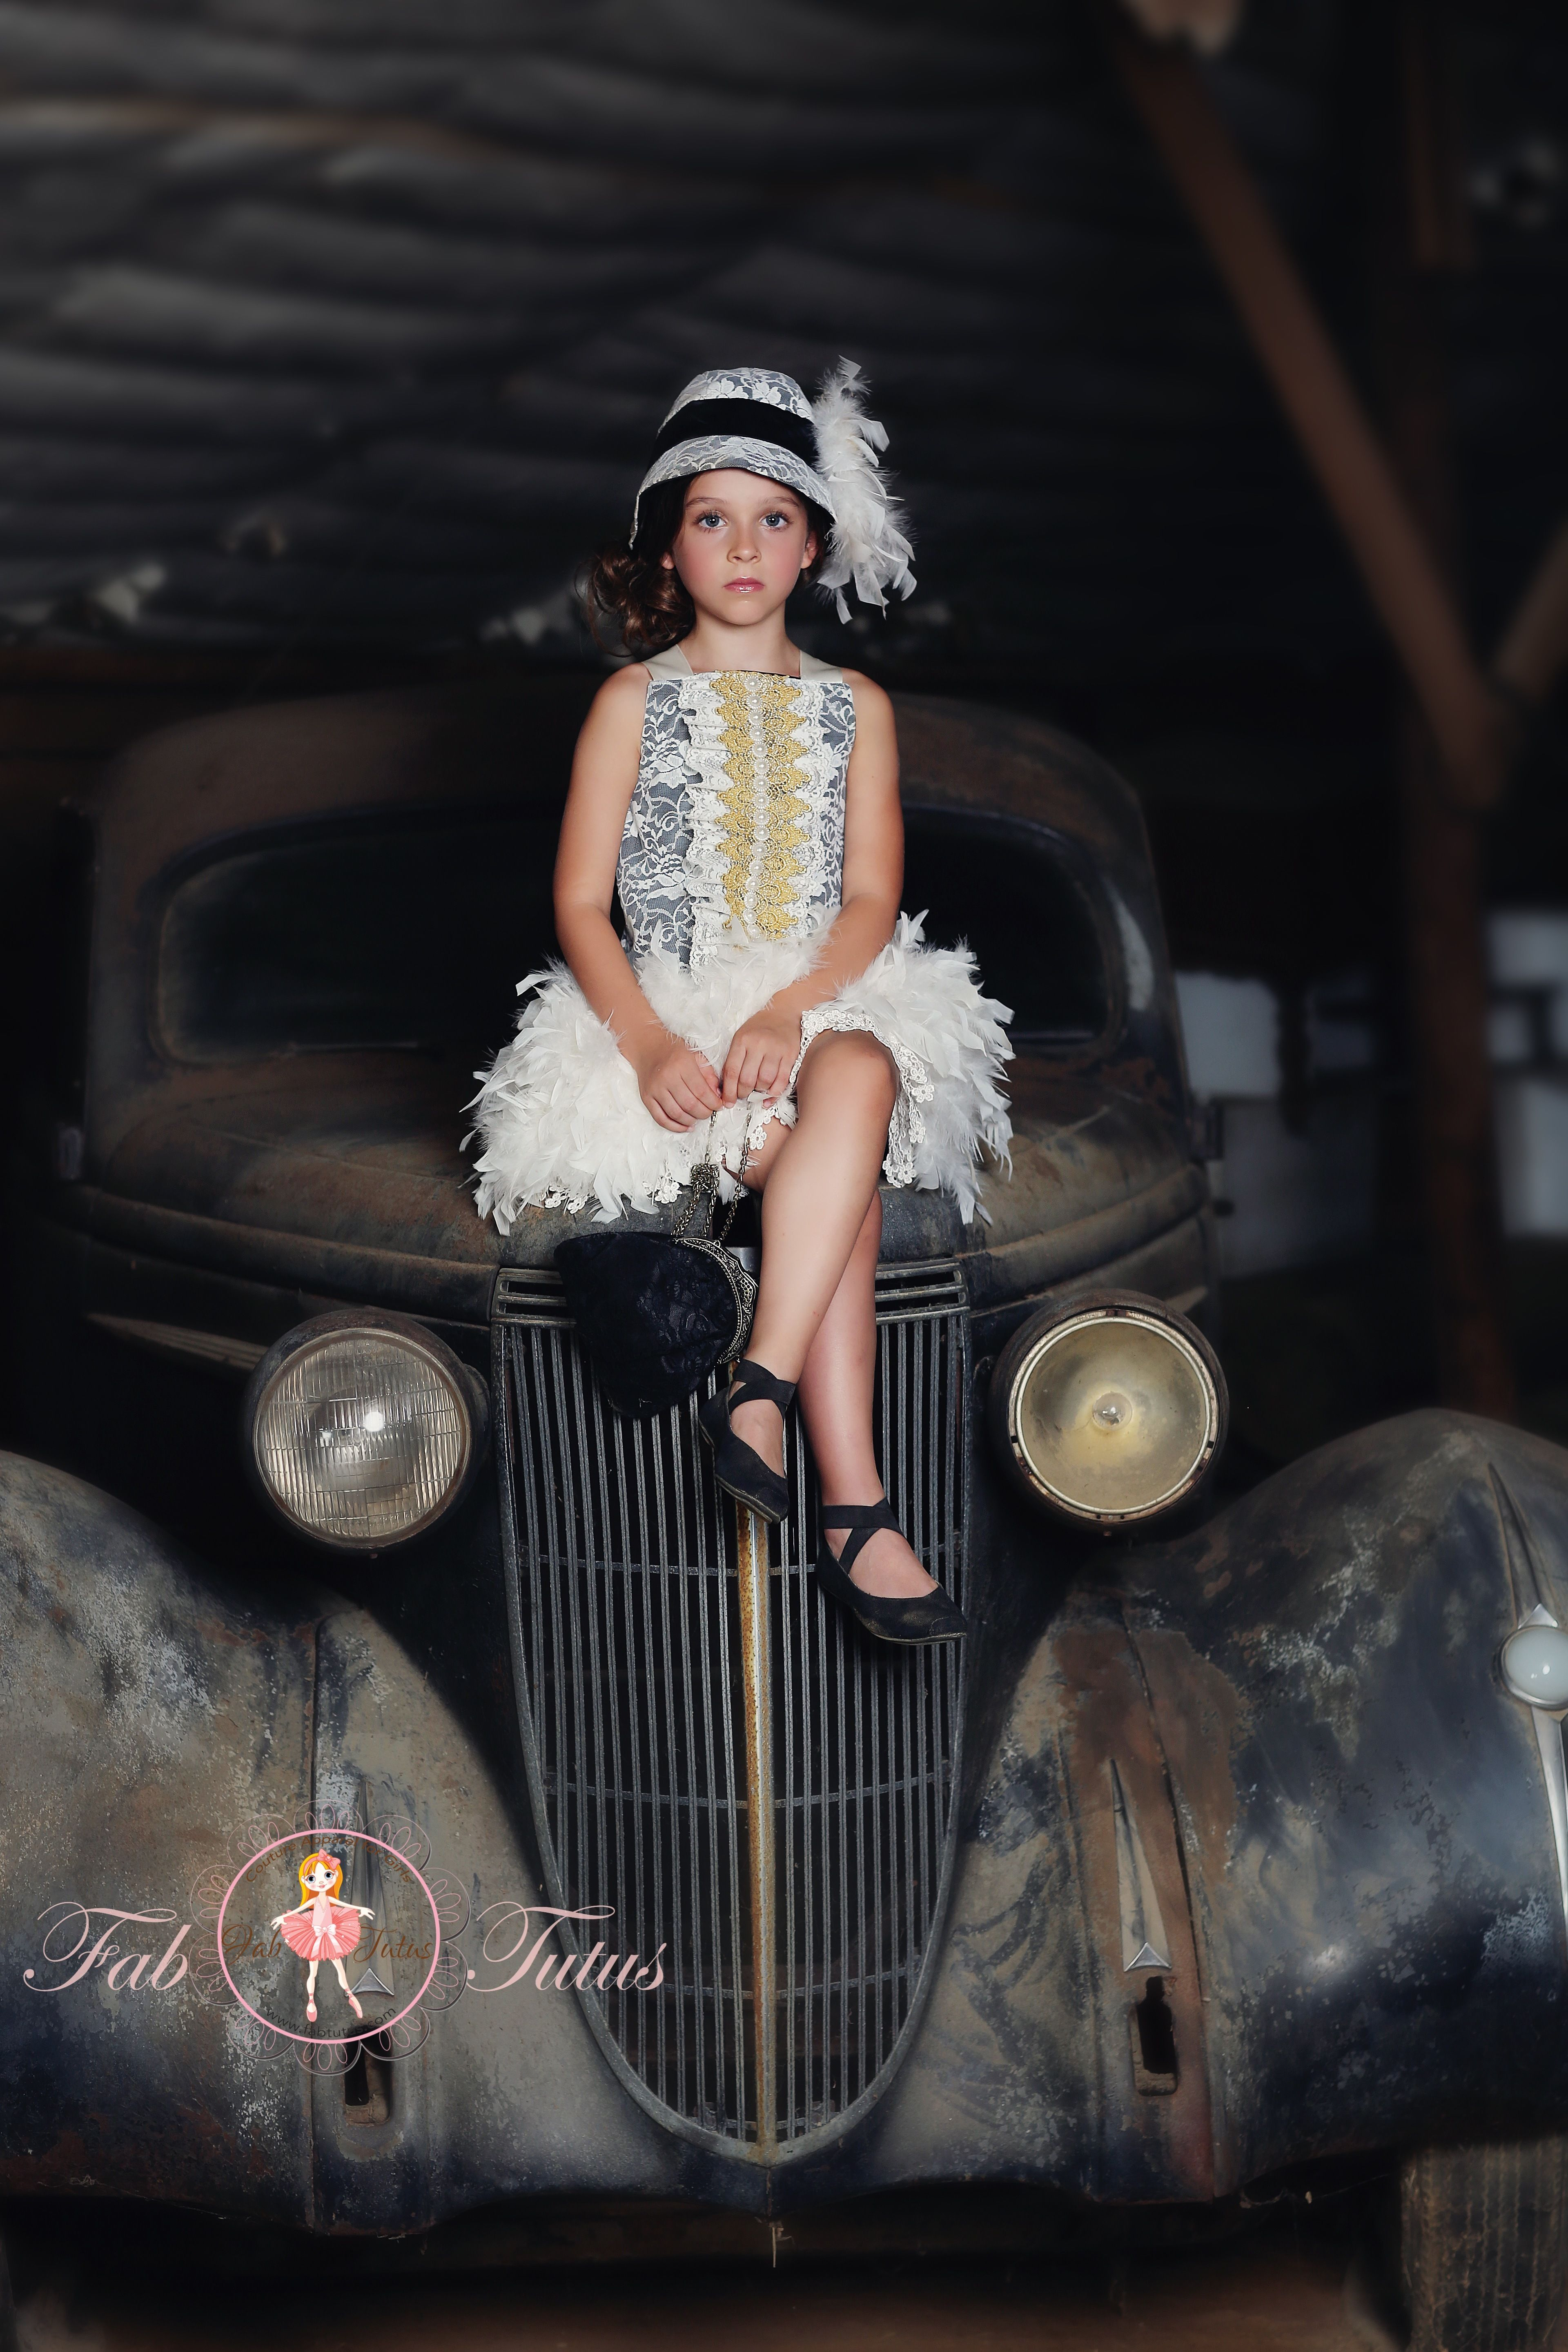 20-ies inspired wedding - Great Gatsby style - \